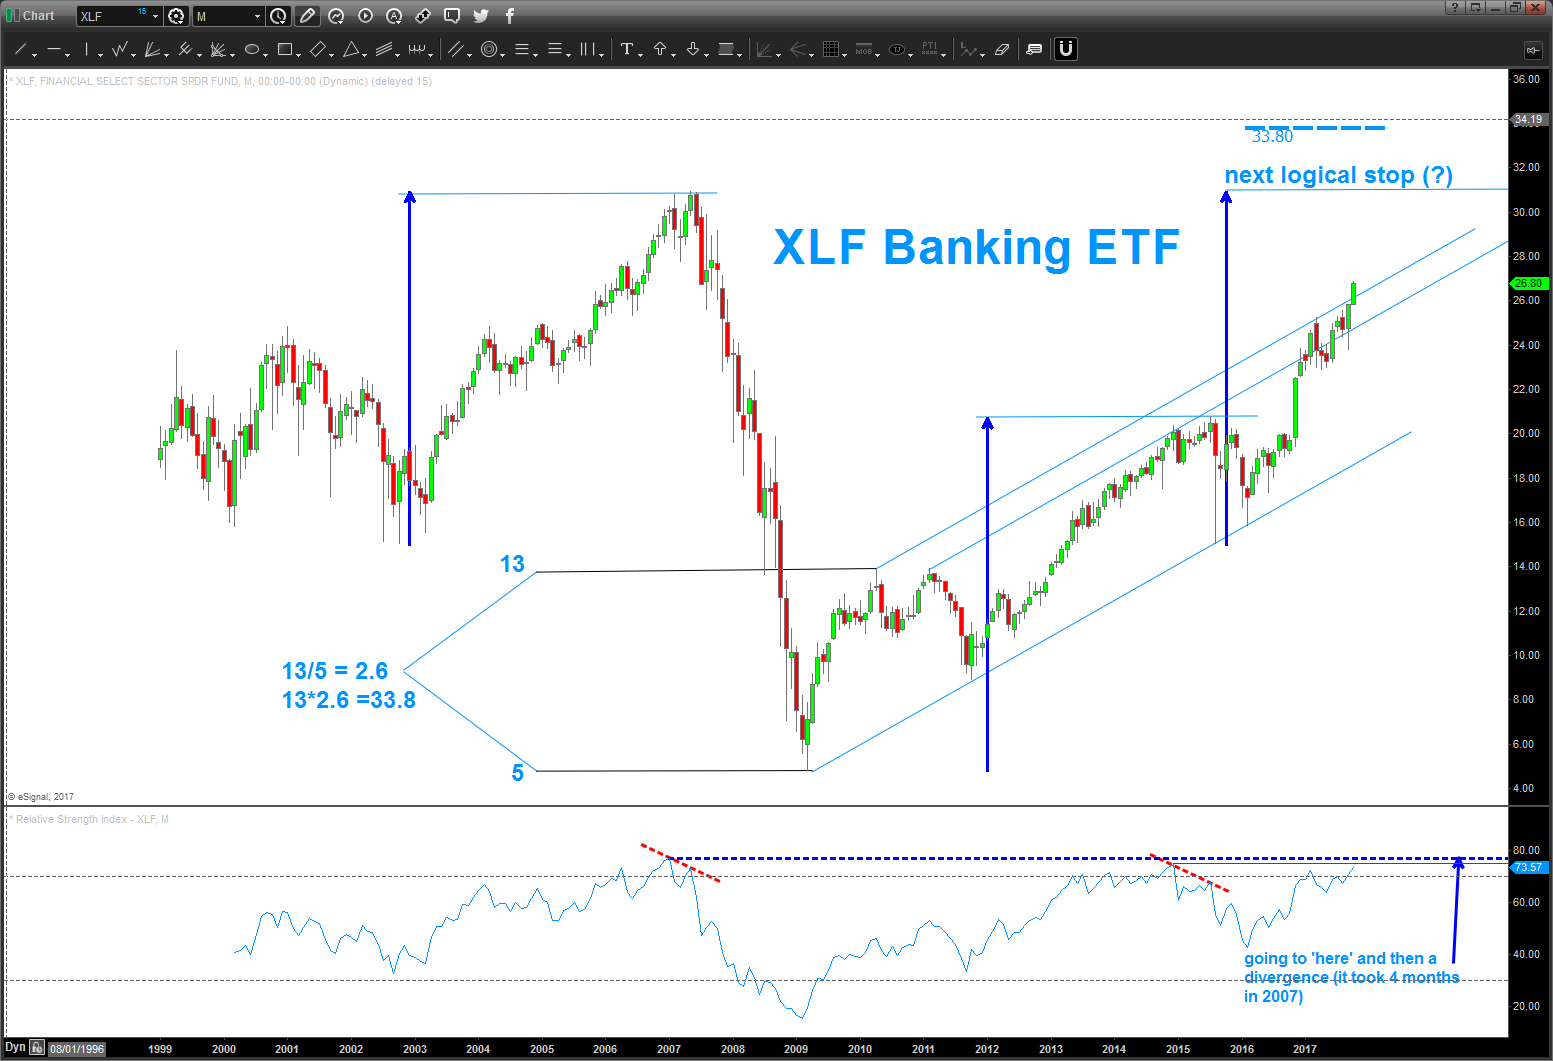 xlf financial bank stocks sector etf bull market price target